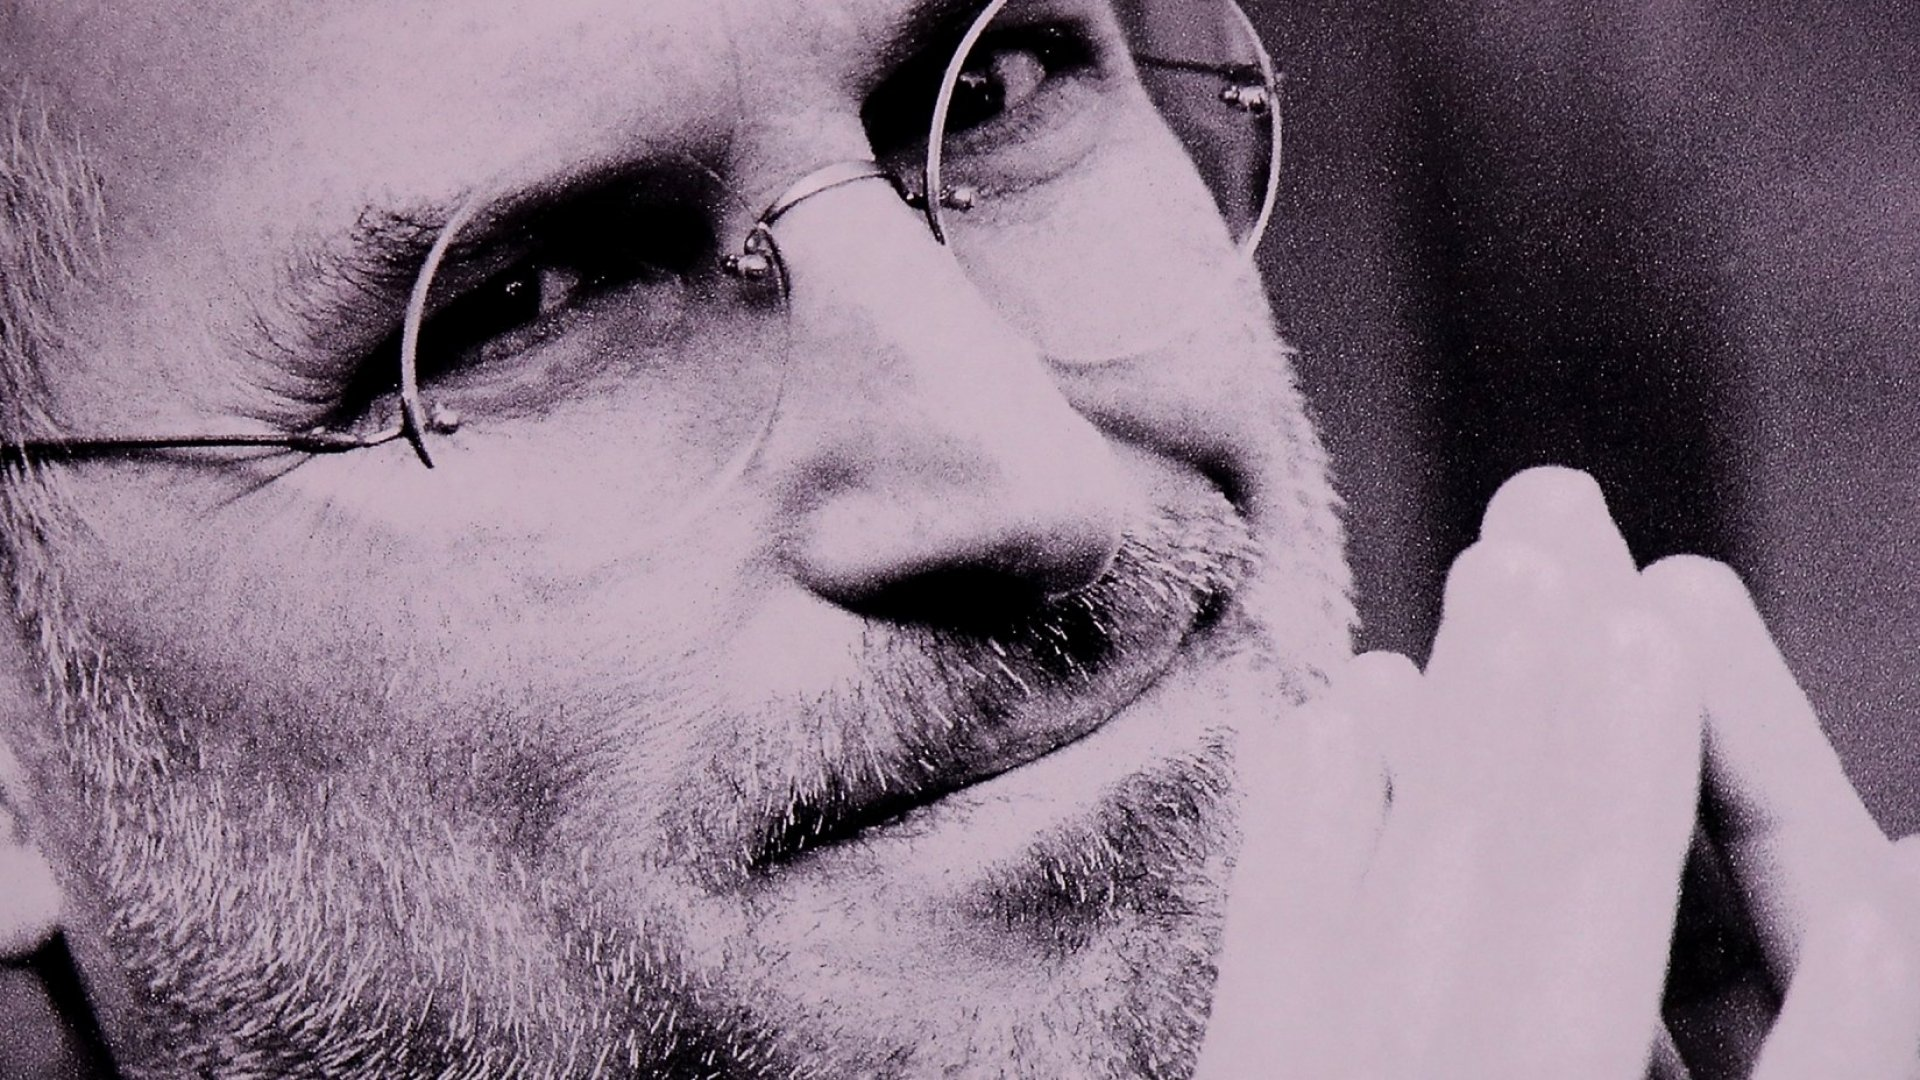 Steve Jobs Said 1 Thing Separates Great Leaders From All the Rest (And Makes All the Difference for Success)